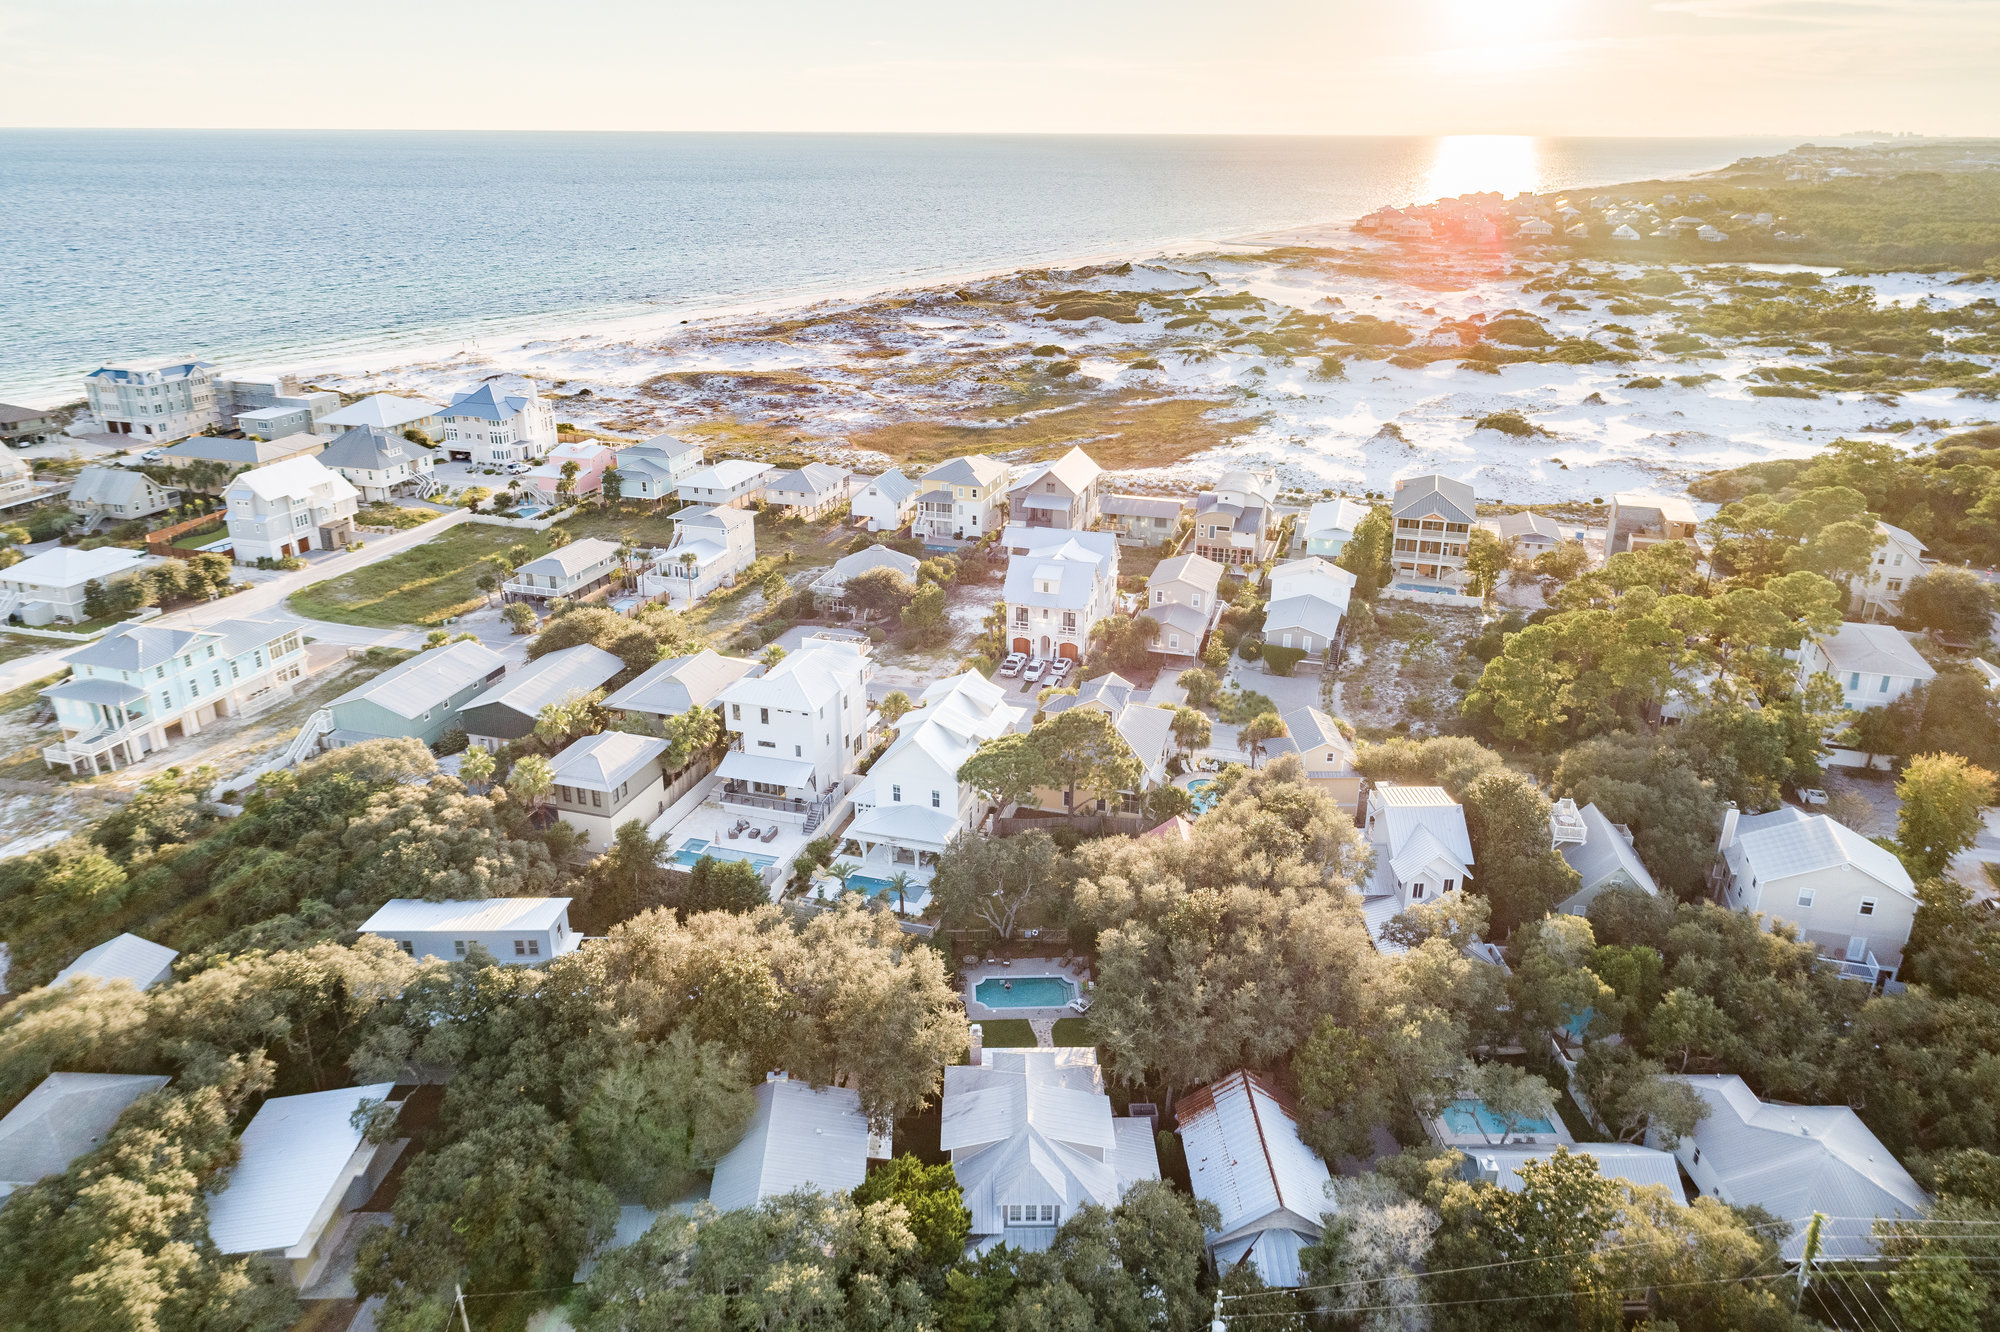 30a and Santa Rosa Beach Homes